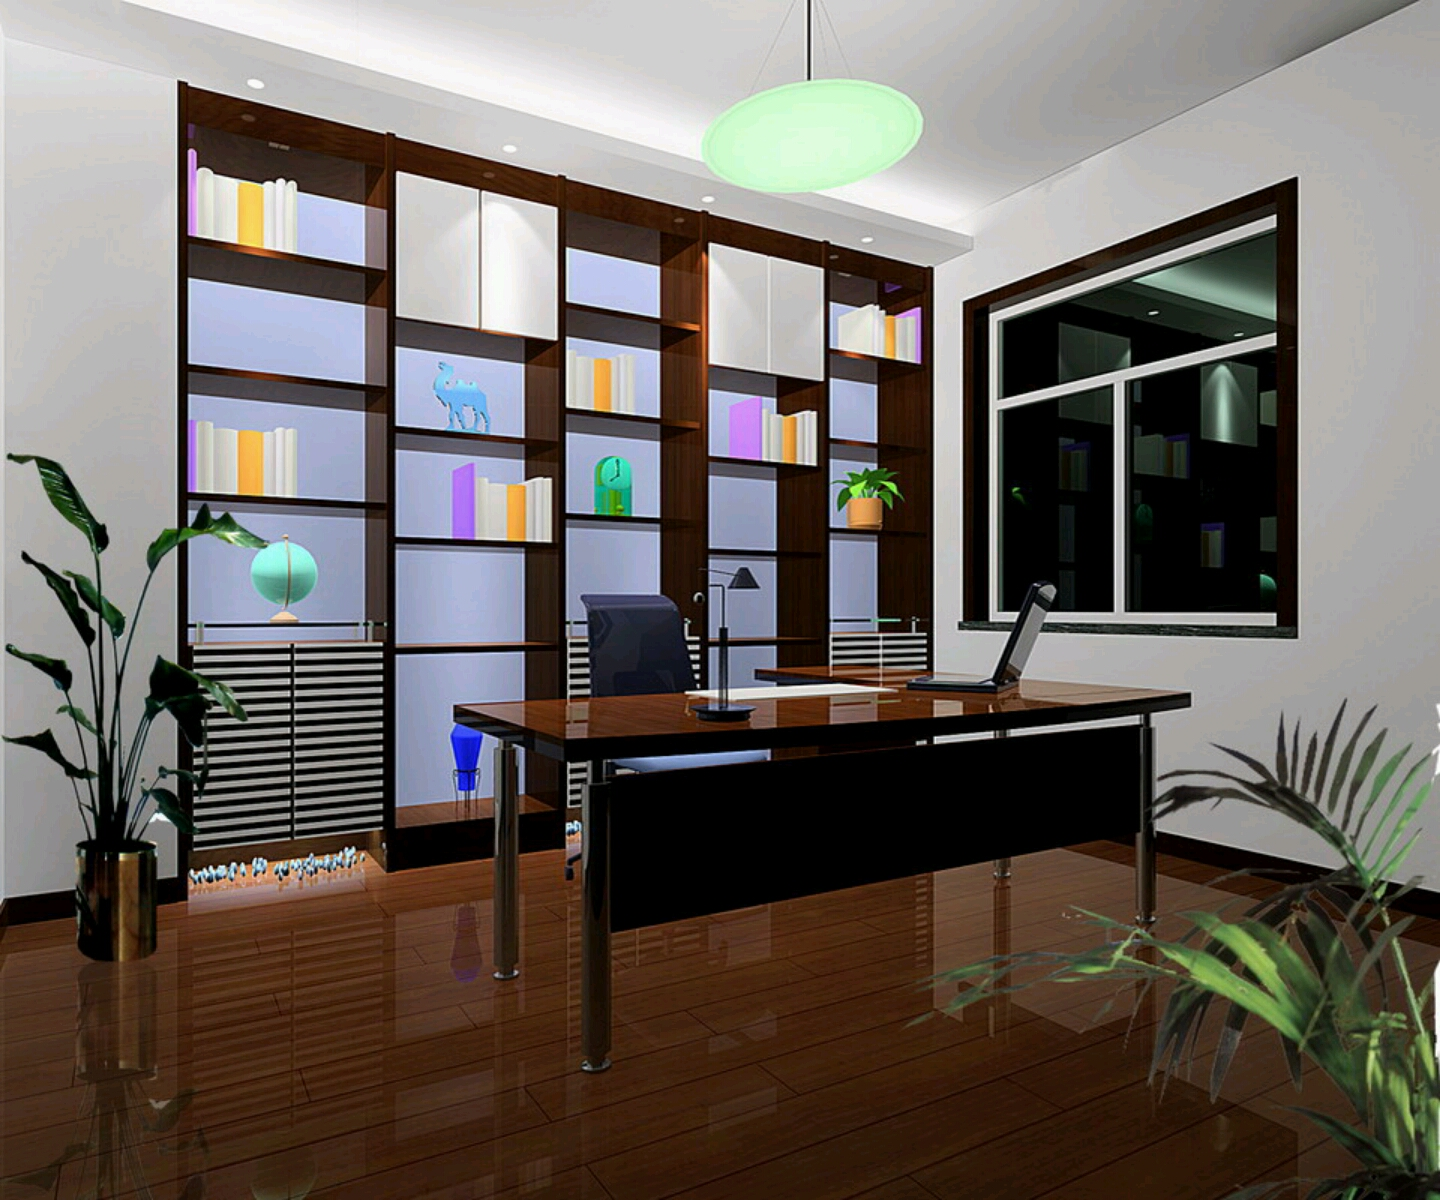 Rumah rumah minimalis study rooms designs ideas for Home design room colors